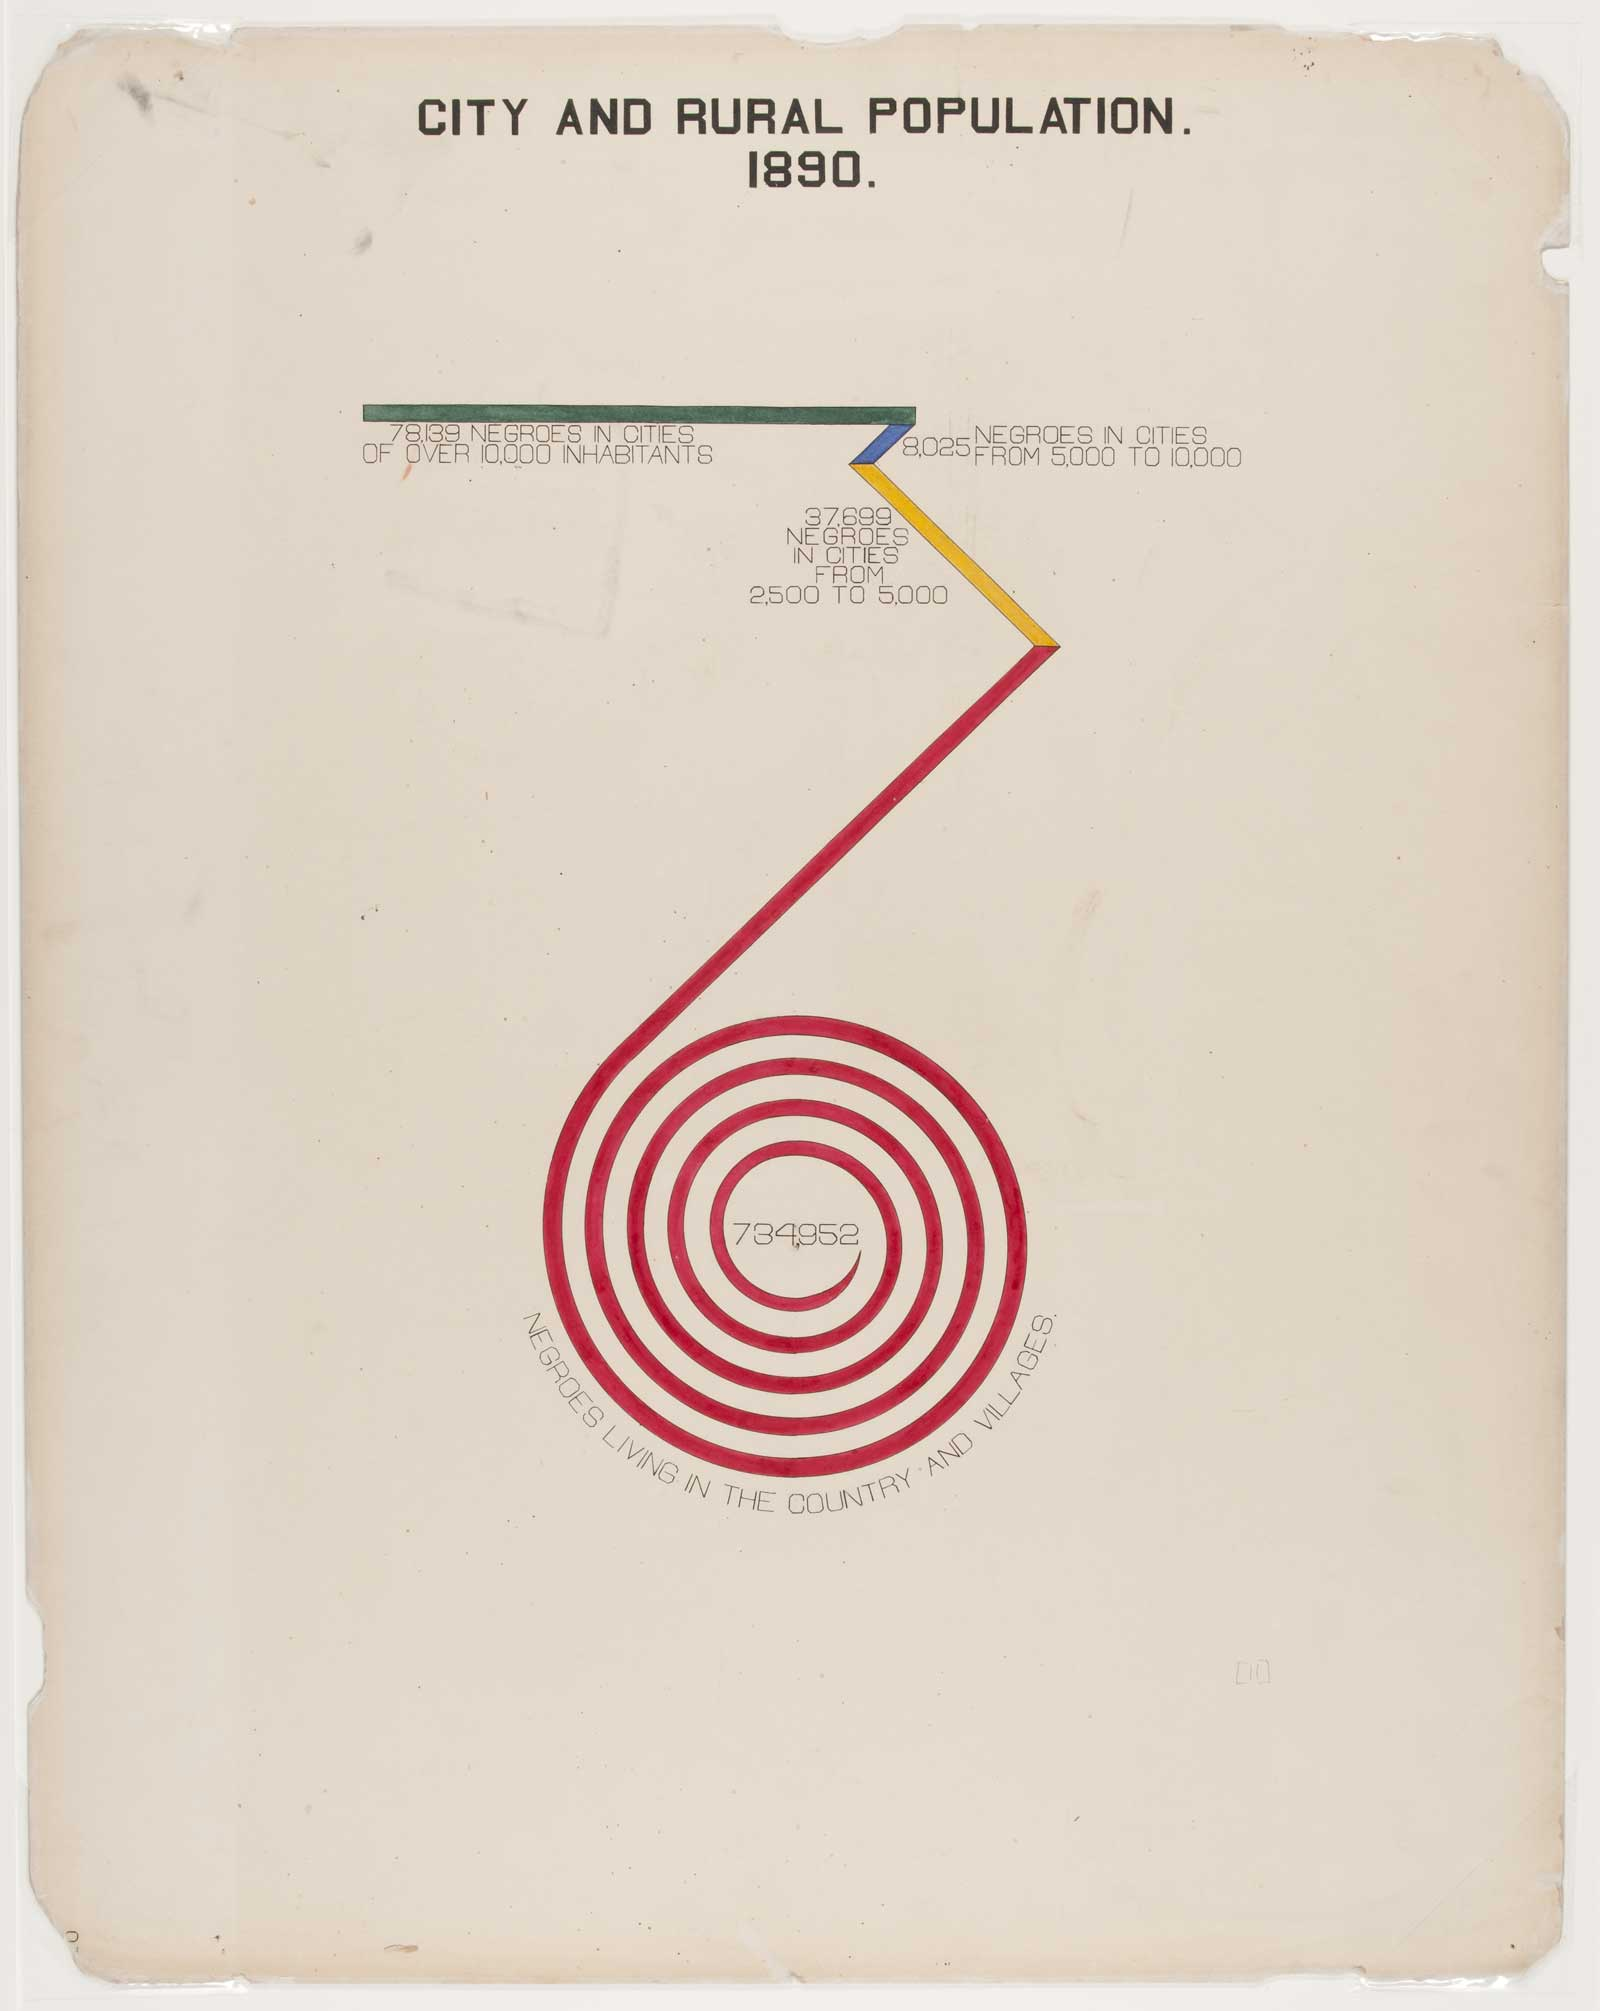 a red spiral drawing showing the rural and city population in America in 1890